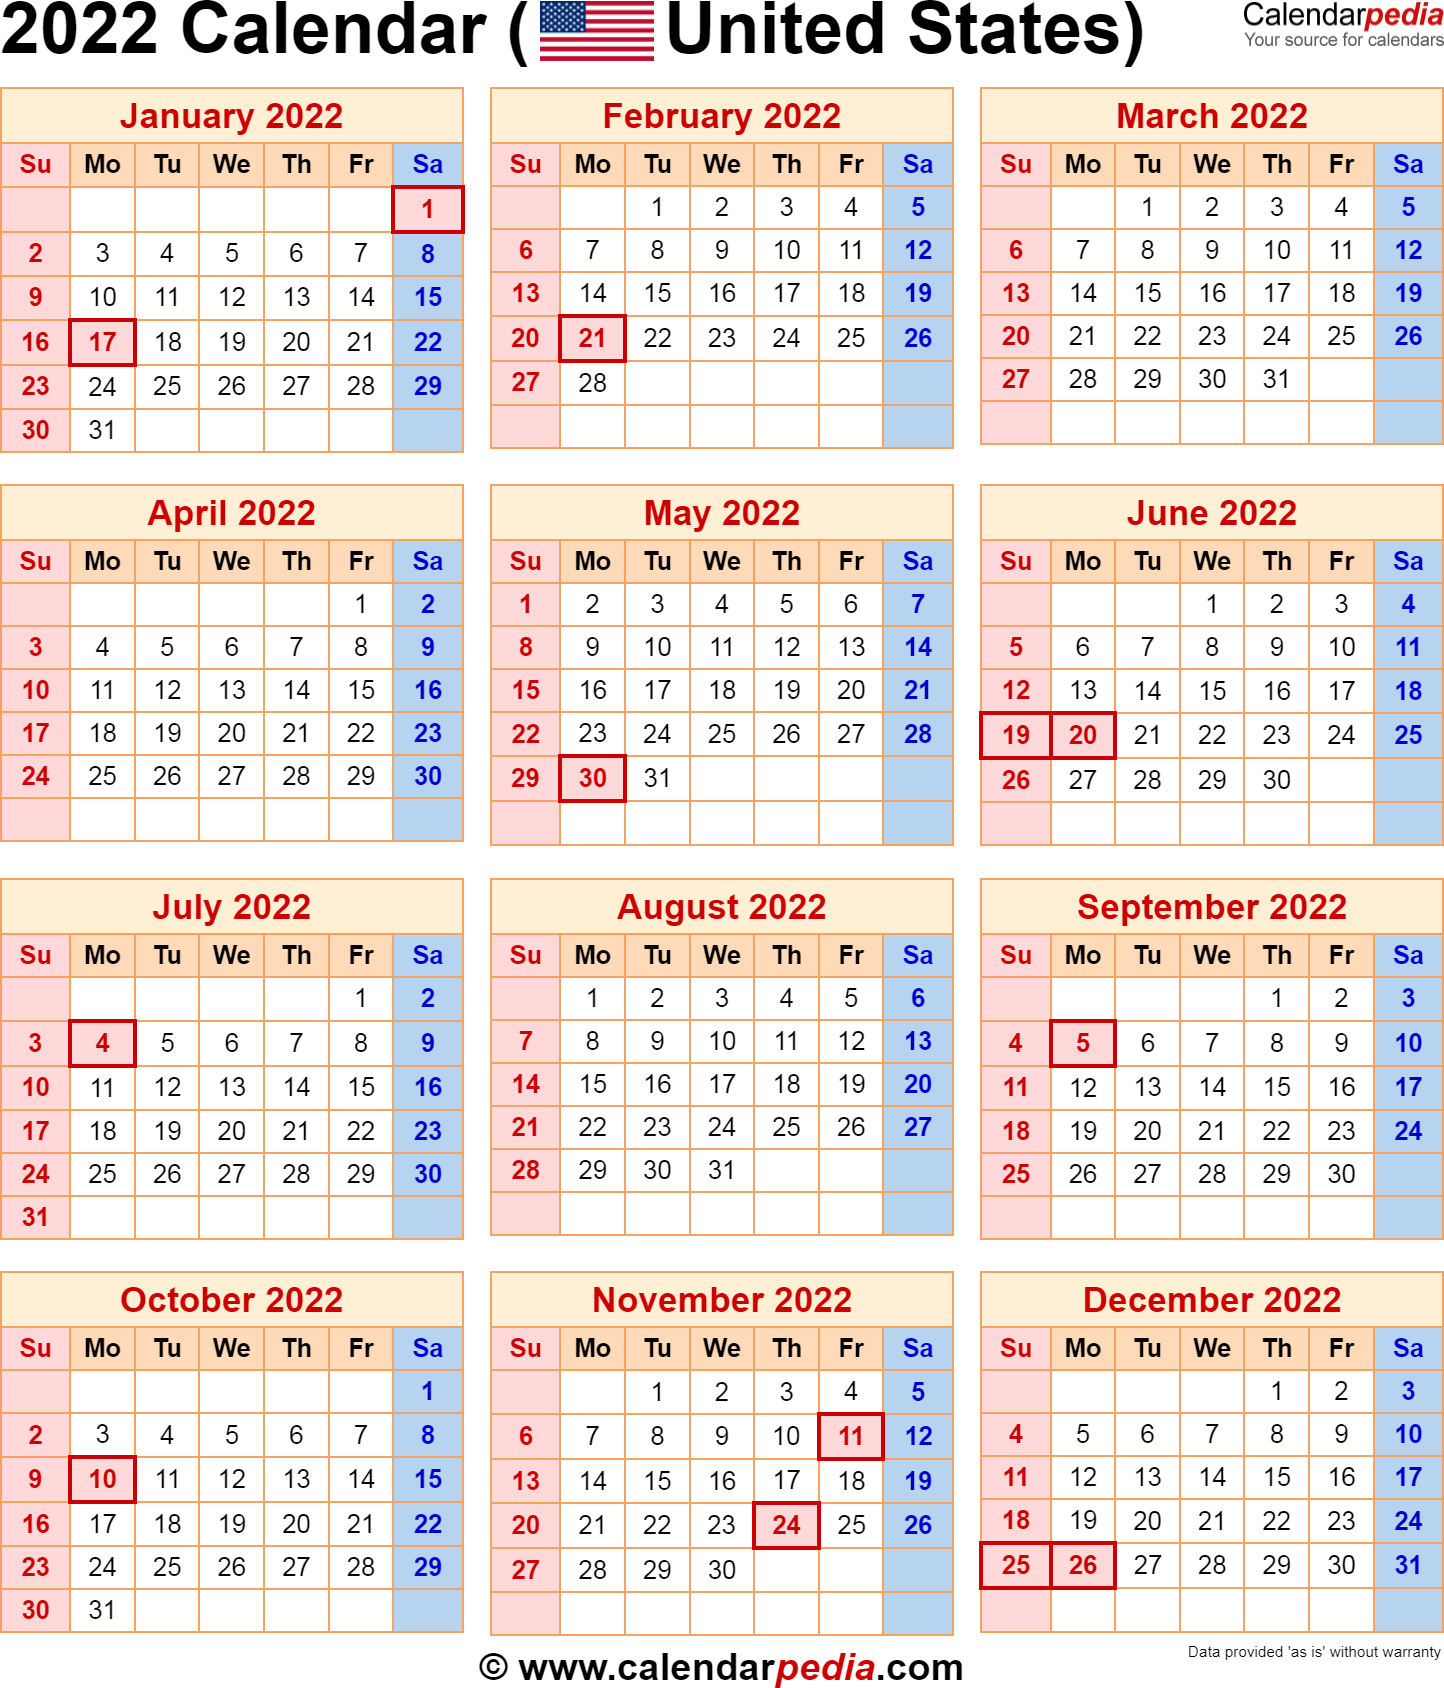 2022 Calendar with Federal Holidays